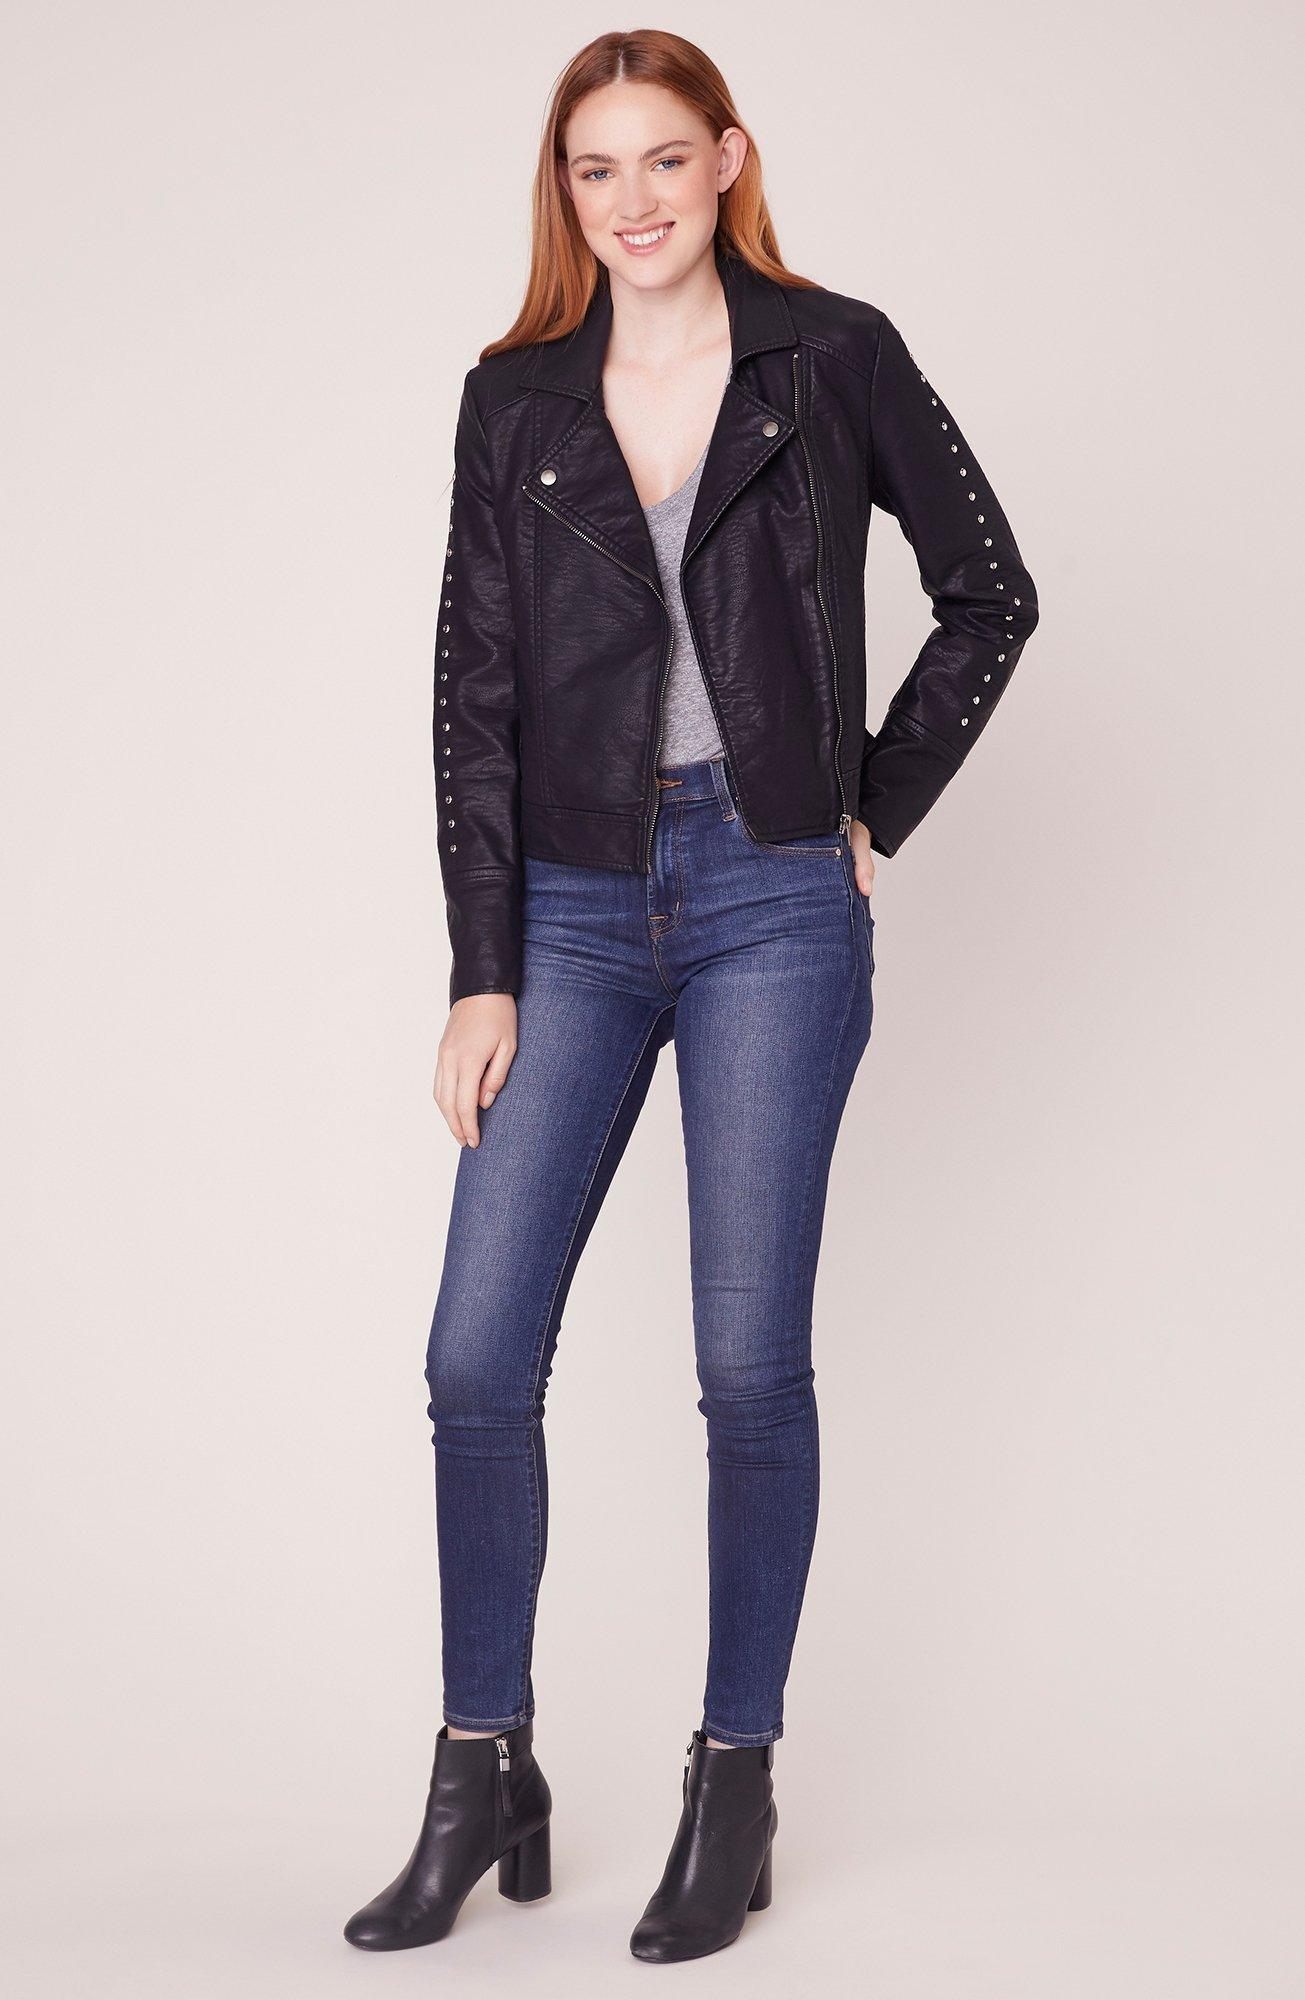 Jack Womens Muffin Ripple Vegan Leather Moto with Stud Details